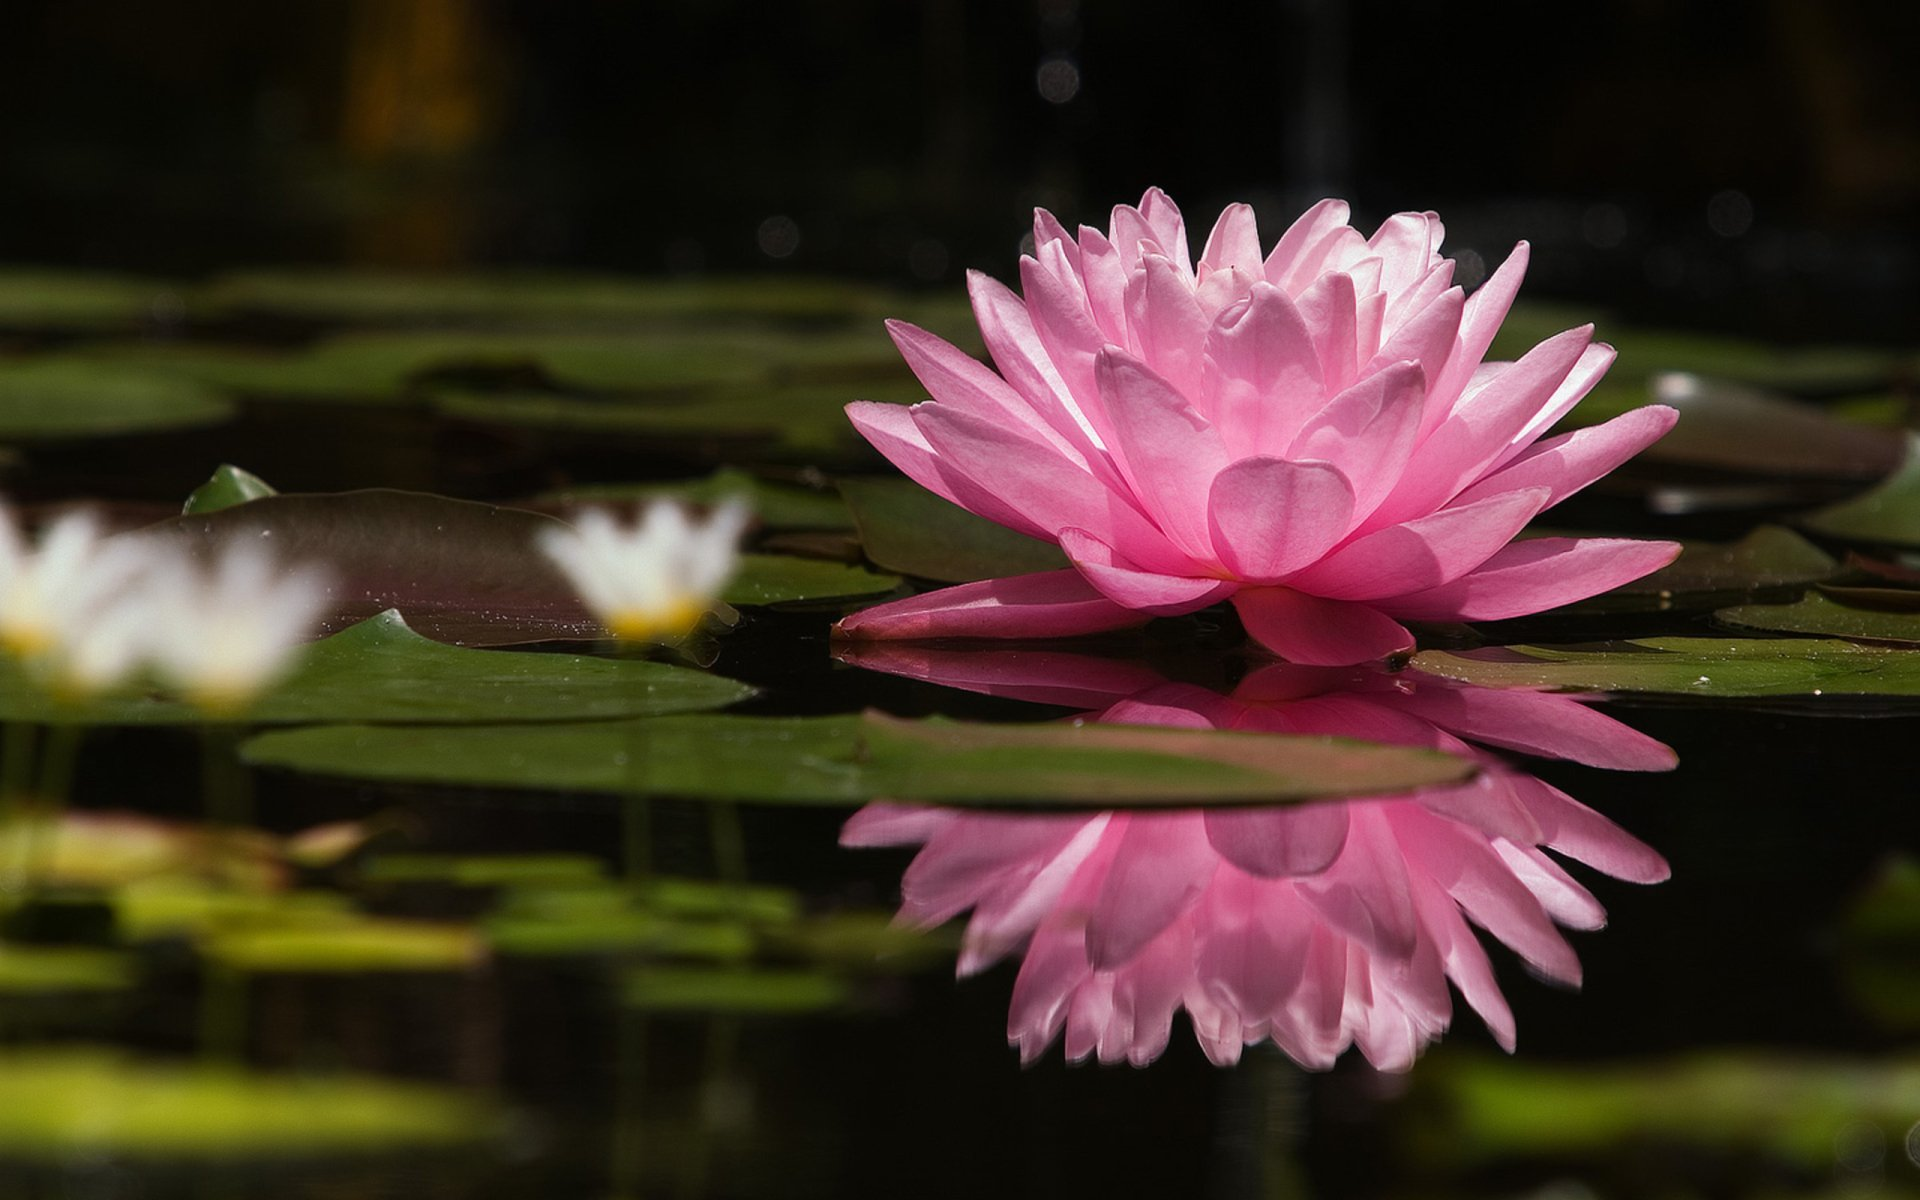 Earth - Water Lily  Lily Pink Flower Reflection Flower Wallpaper